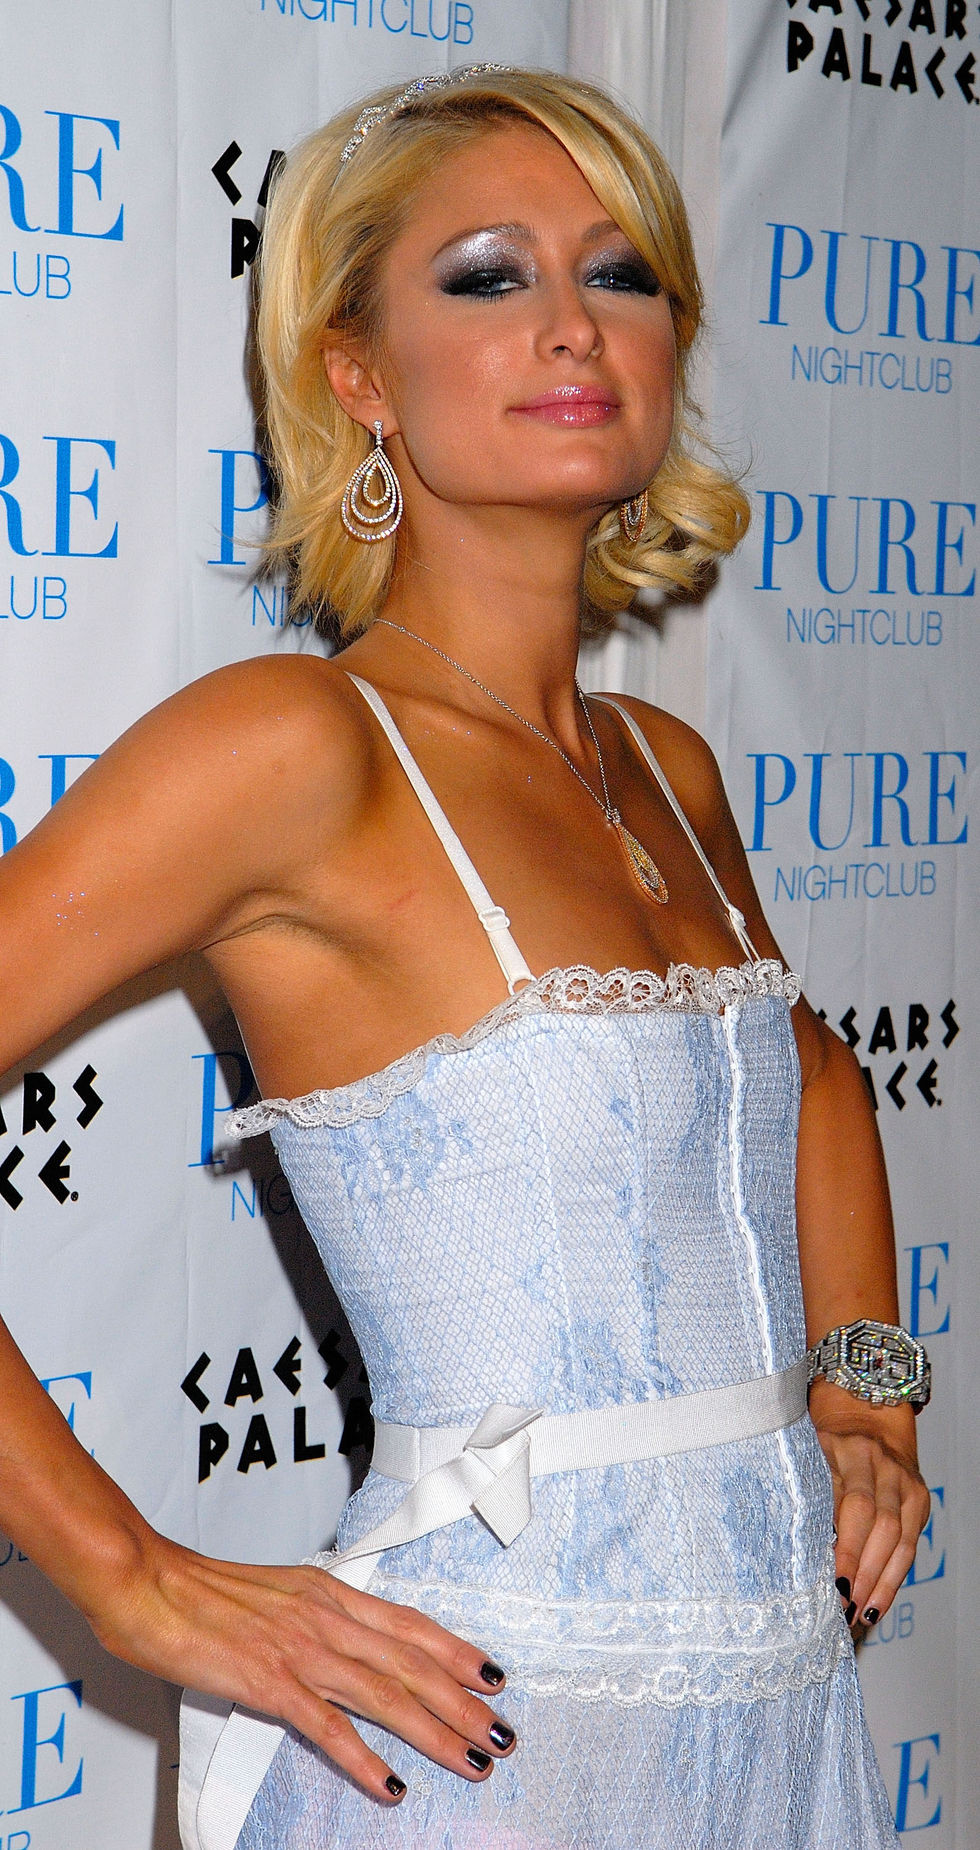 paris-hilton-celebrates-a-burlesque-birthday-at-pure-nightclub-in-las-vegas-01